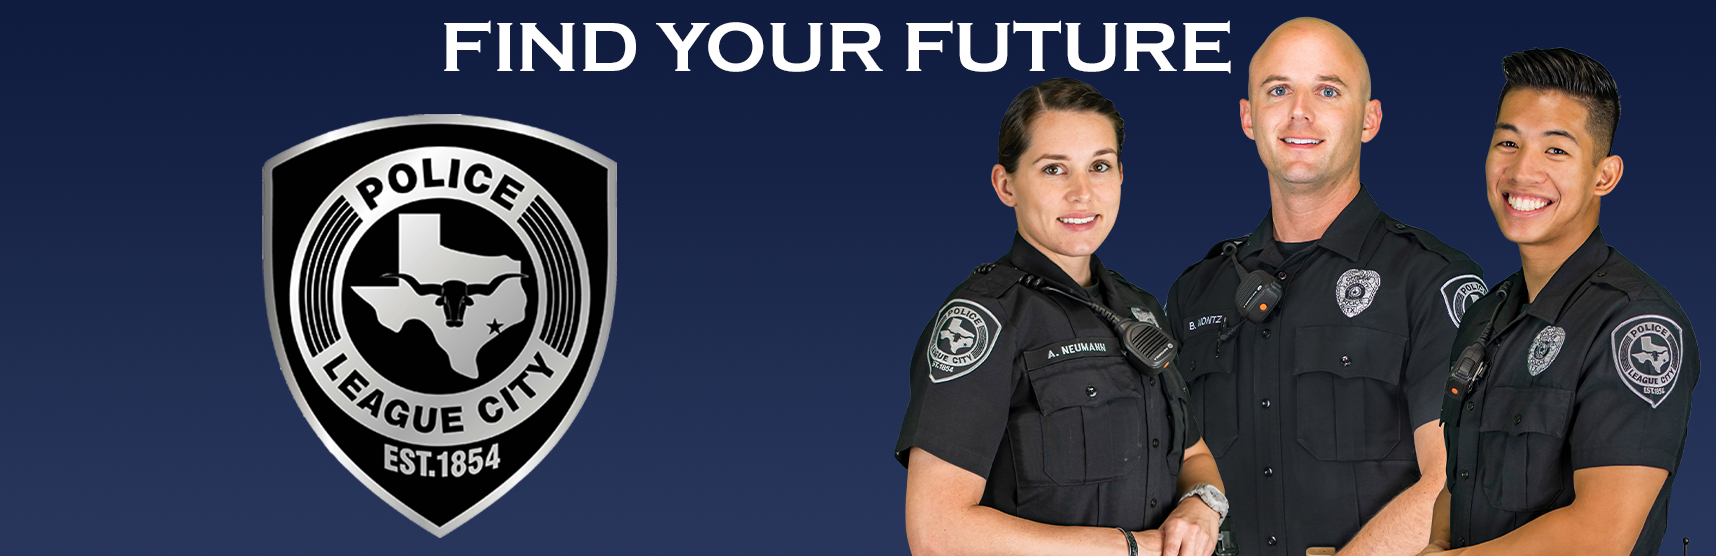 Find your future banner with three police officers